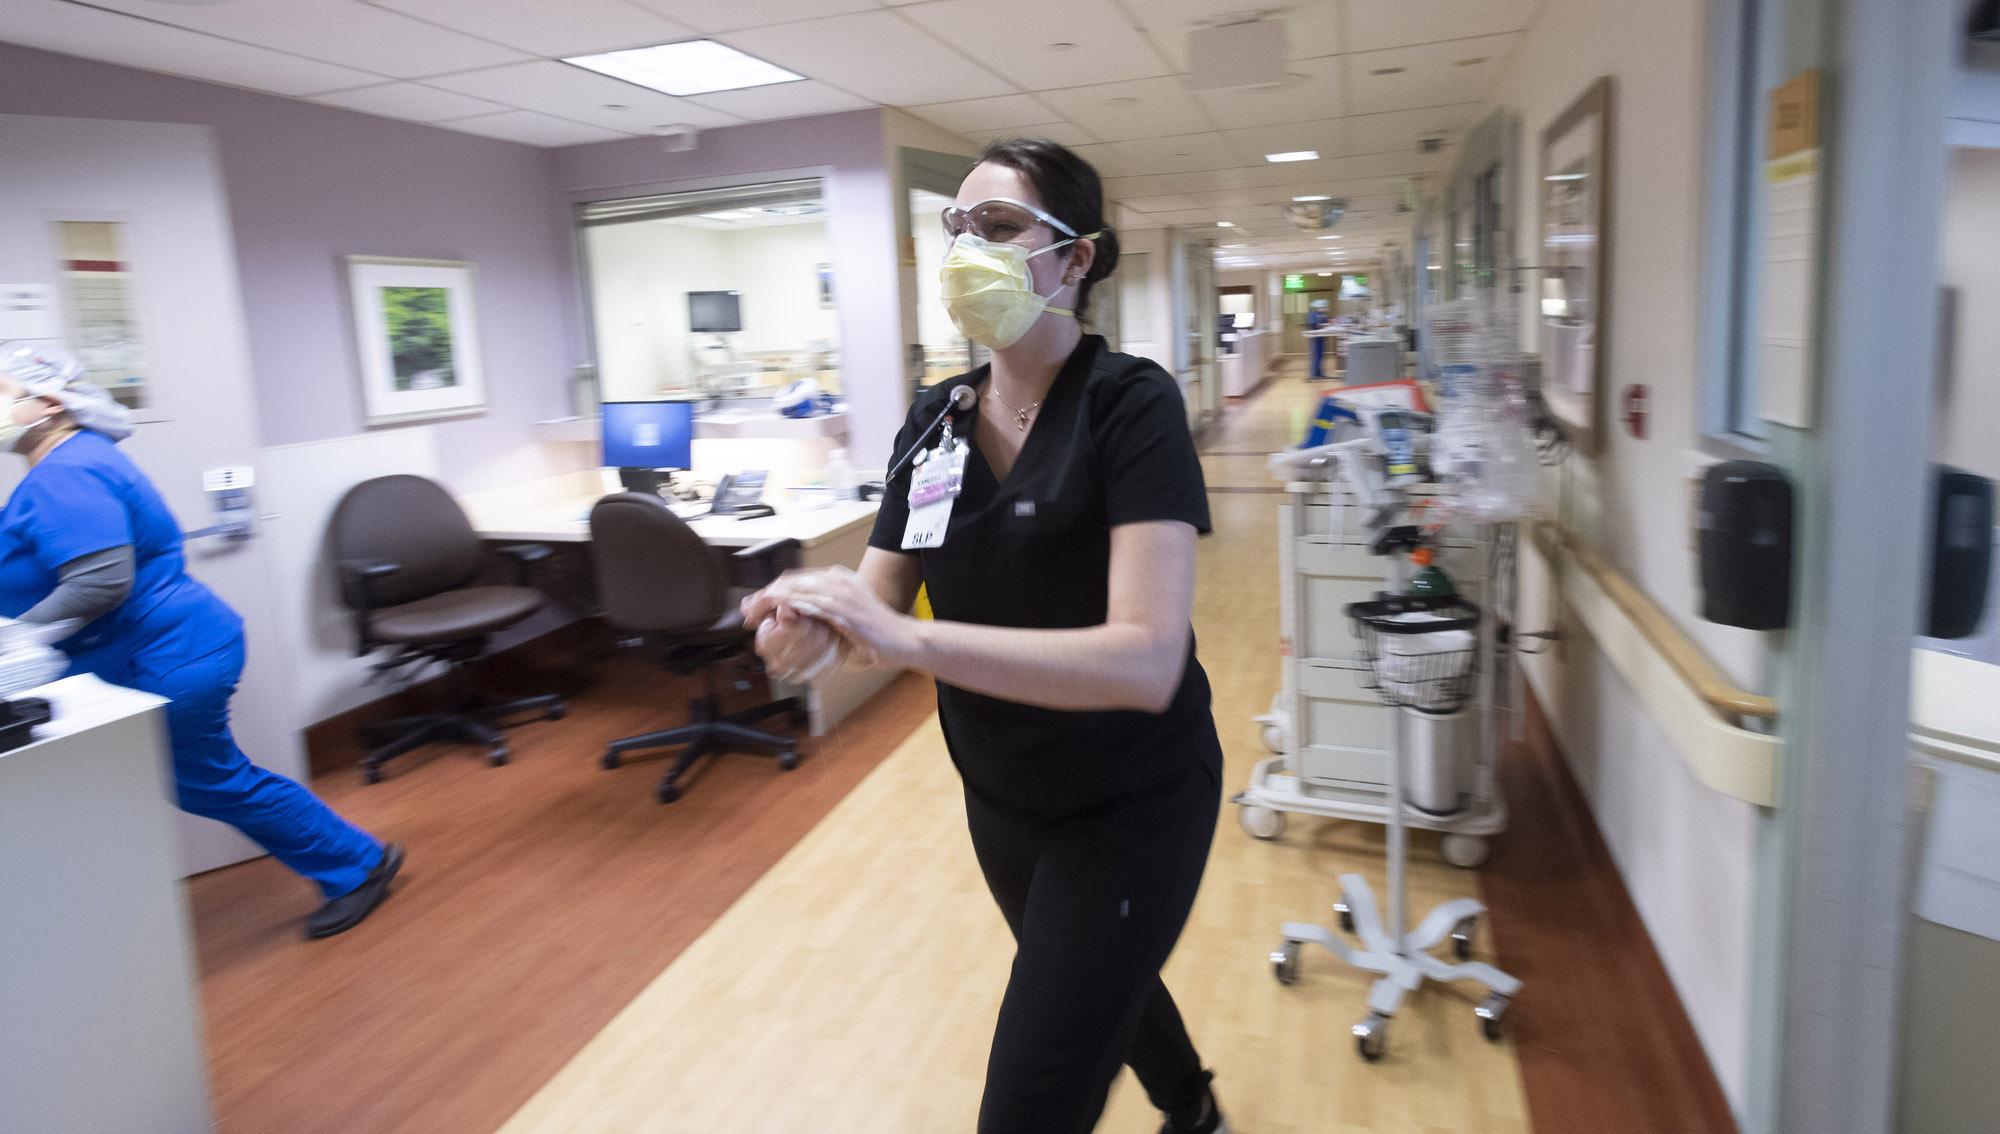 A staff member sanitizes her hands in the Critical Care Unit at St. Jude Medical Center in Fullerton, CA on Tuesday, December 1.